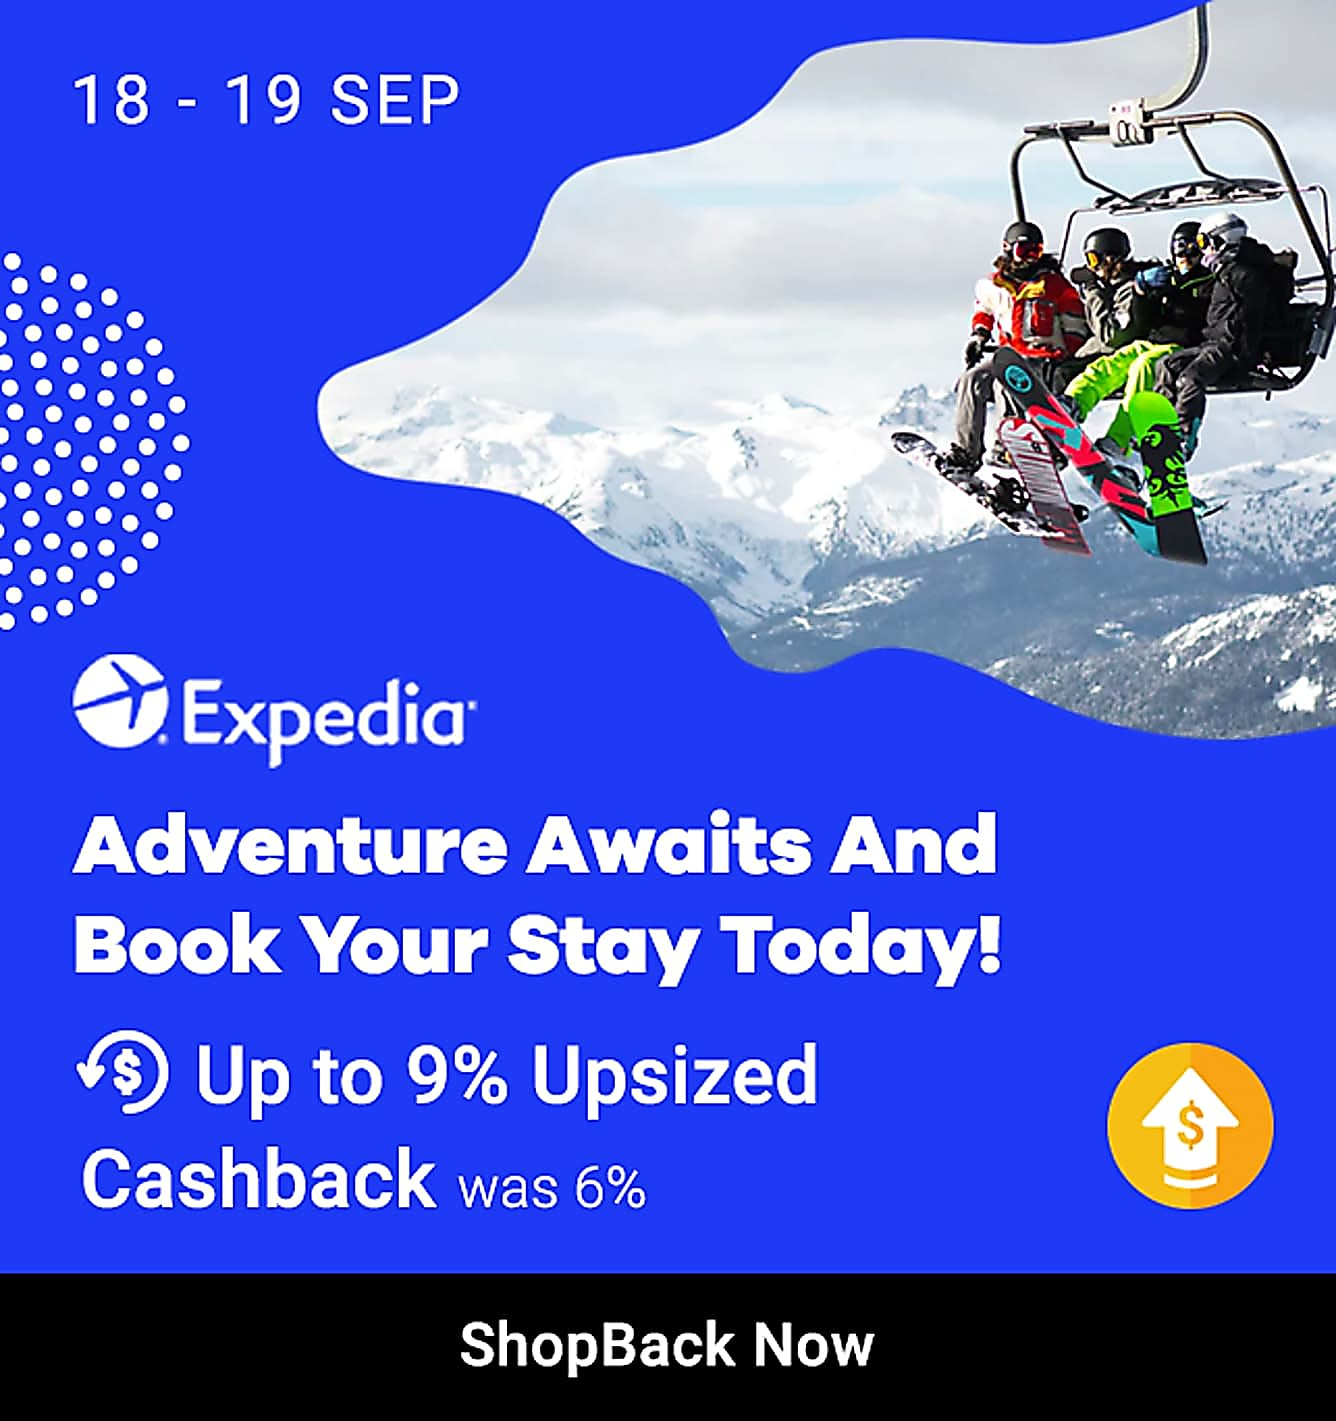 Expedia hotels 9% upsized cashback 18-19 sep